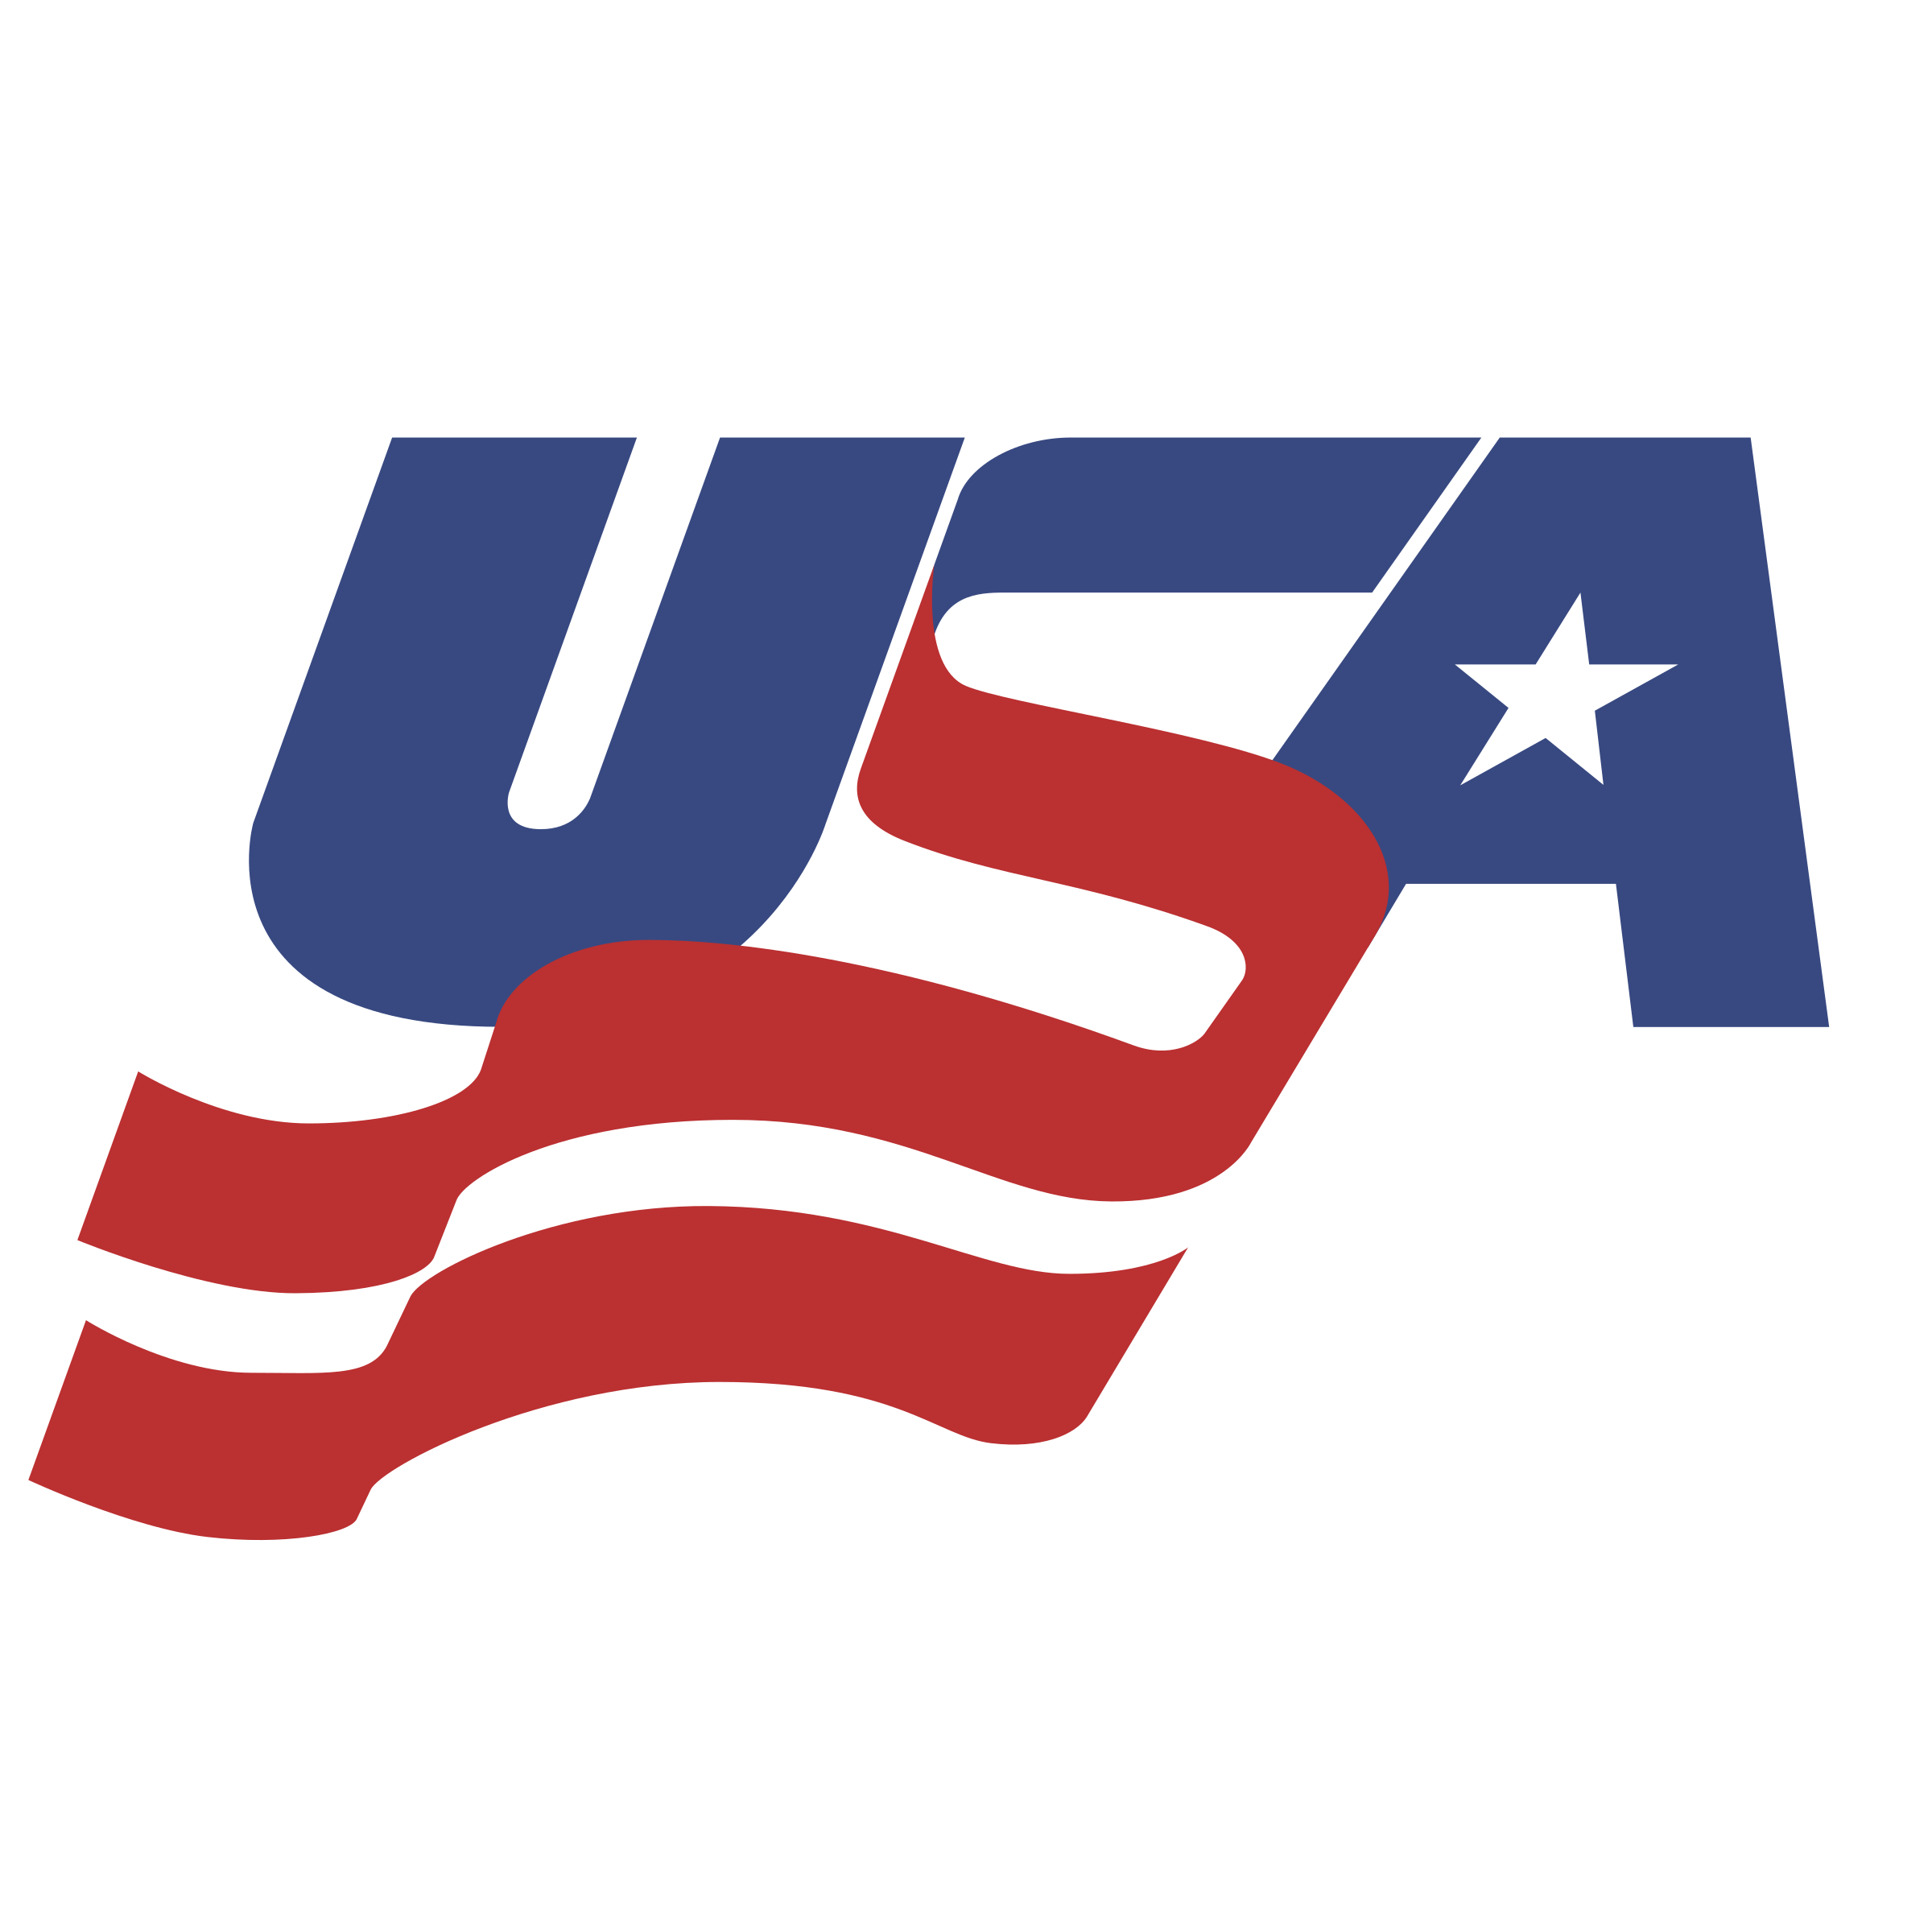 usa-hockey-2-logo-png-transparent